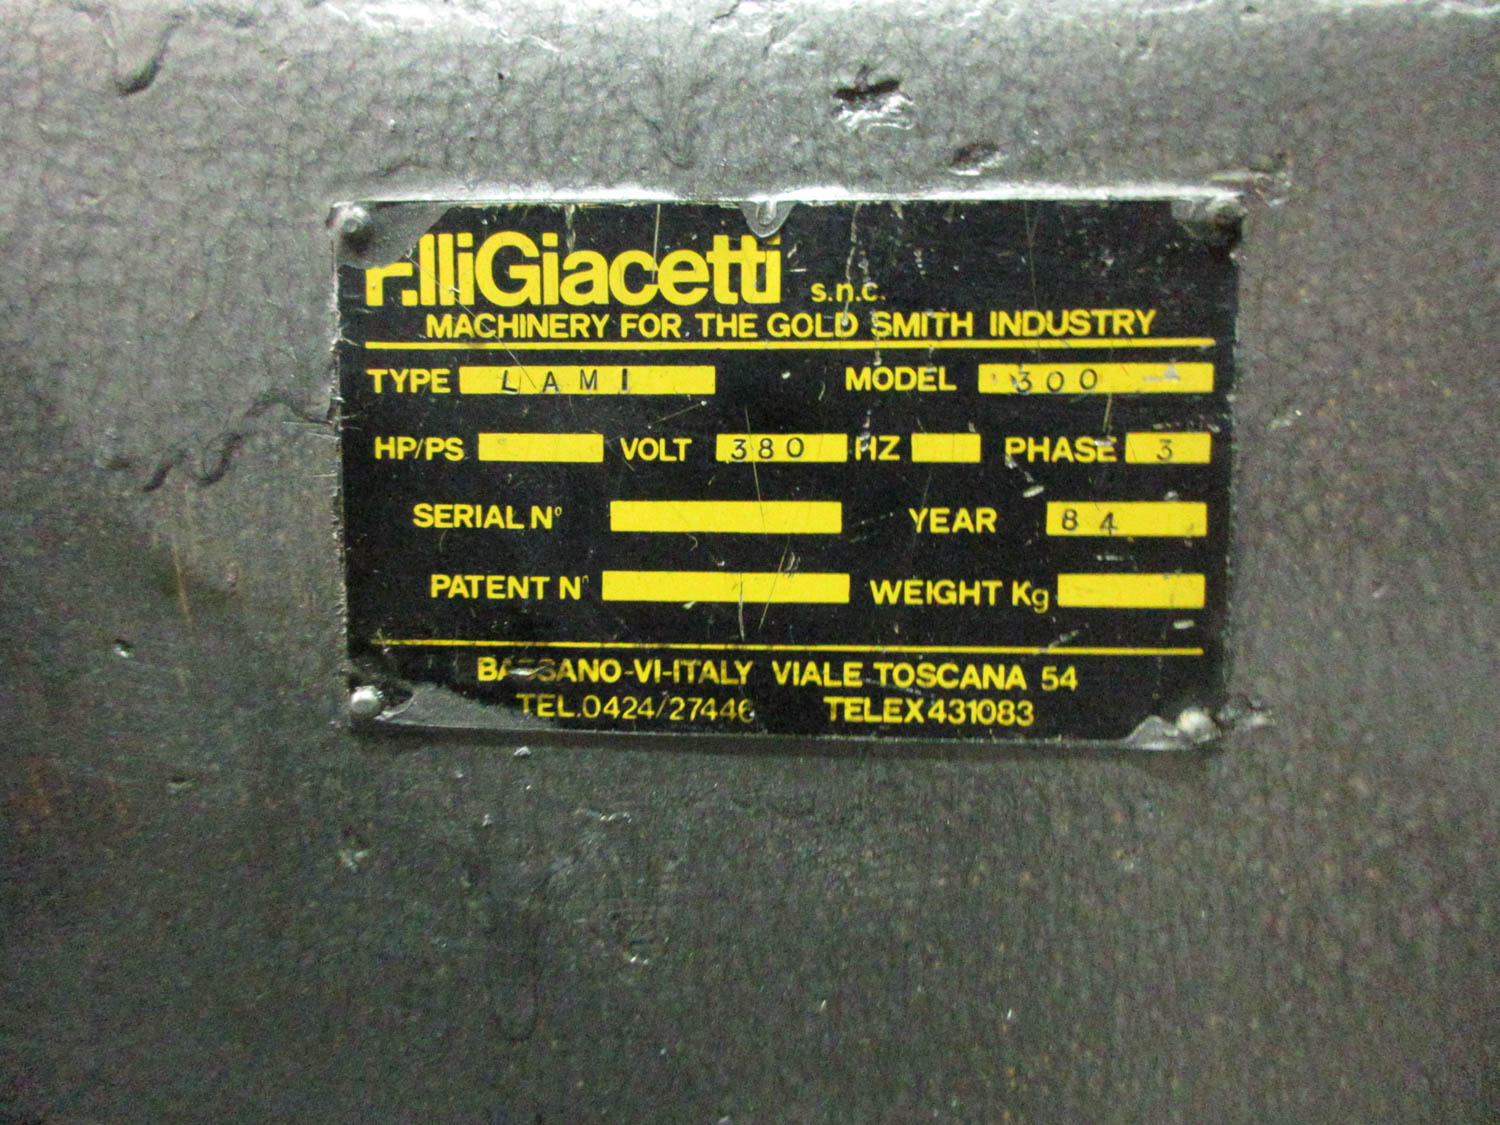 F. LLIGIACETTI MDL. LAMI 380 DOUBLE ROLLING MILL; TWIN SCREW; HAND-OPERATED; 380V; 50HZ; 3 PH, 29 CM - Image 4 of 4